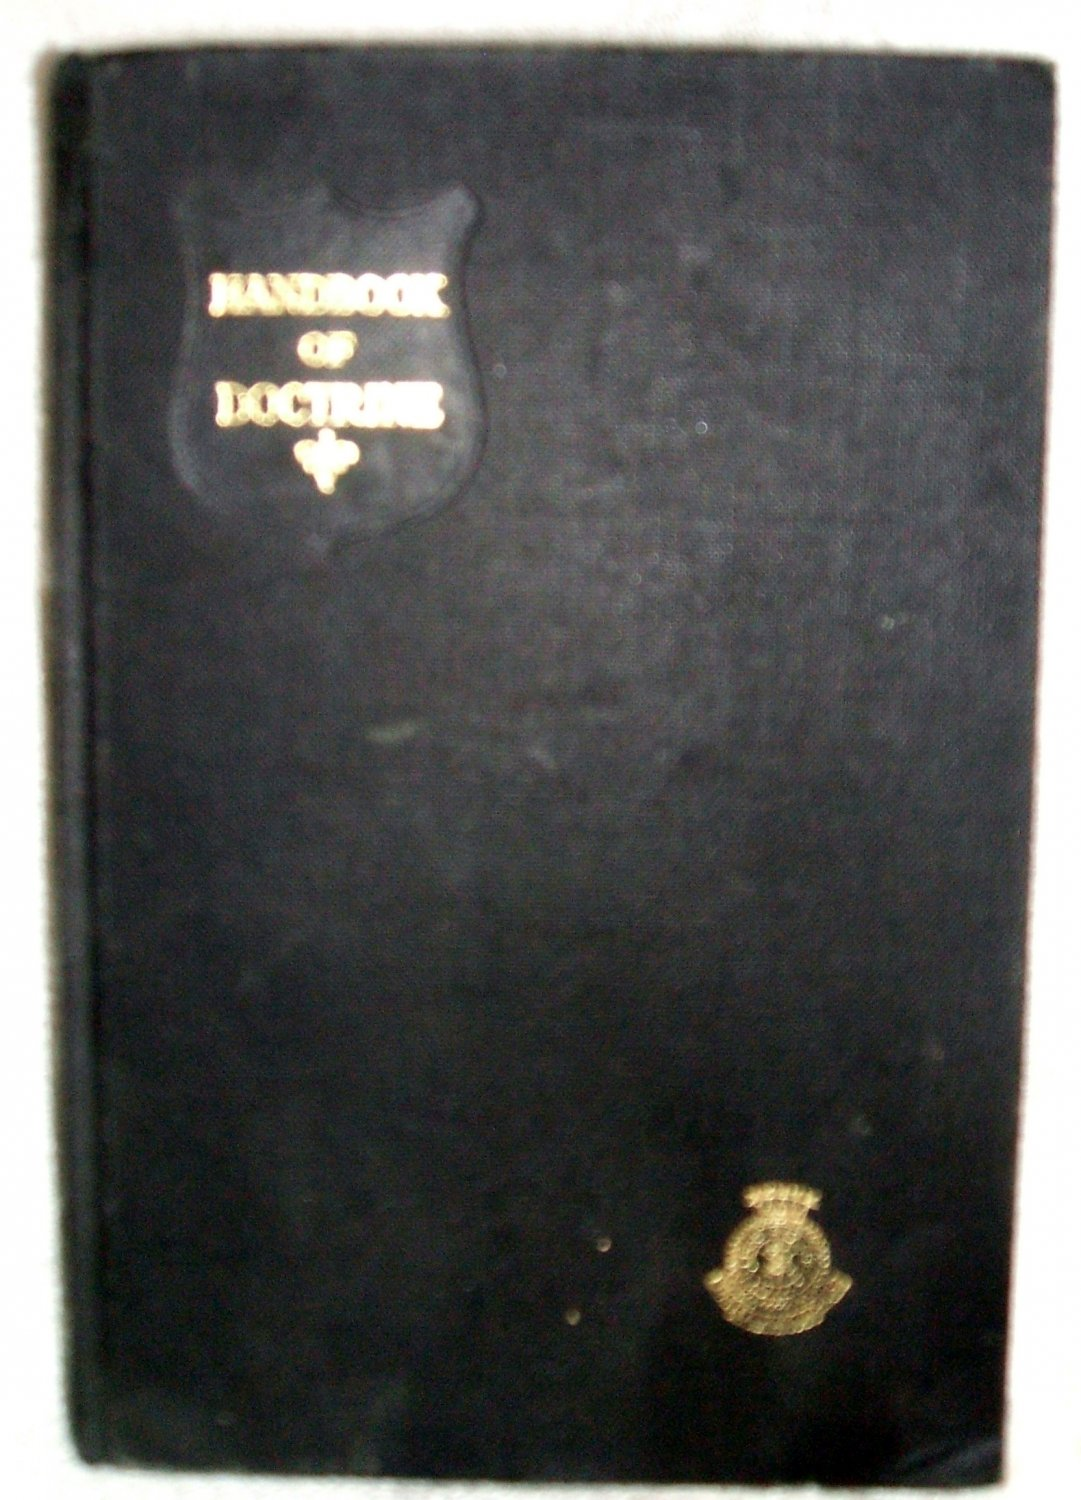 The Salvation Army Handbook of Doctrine 1964